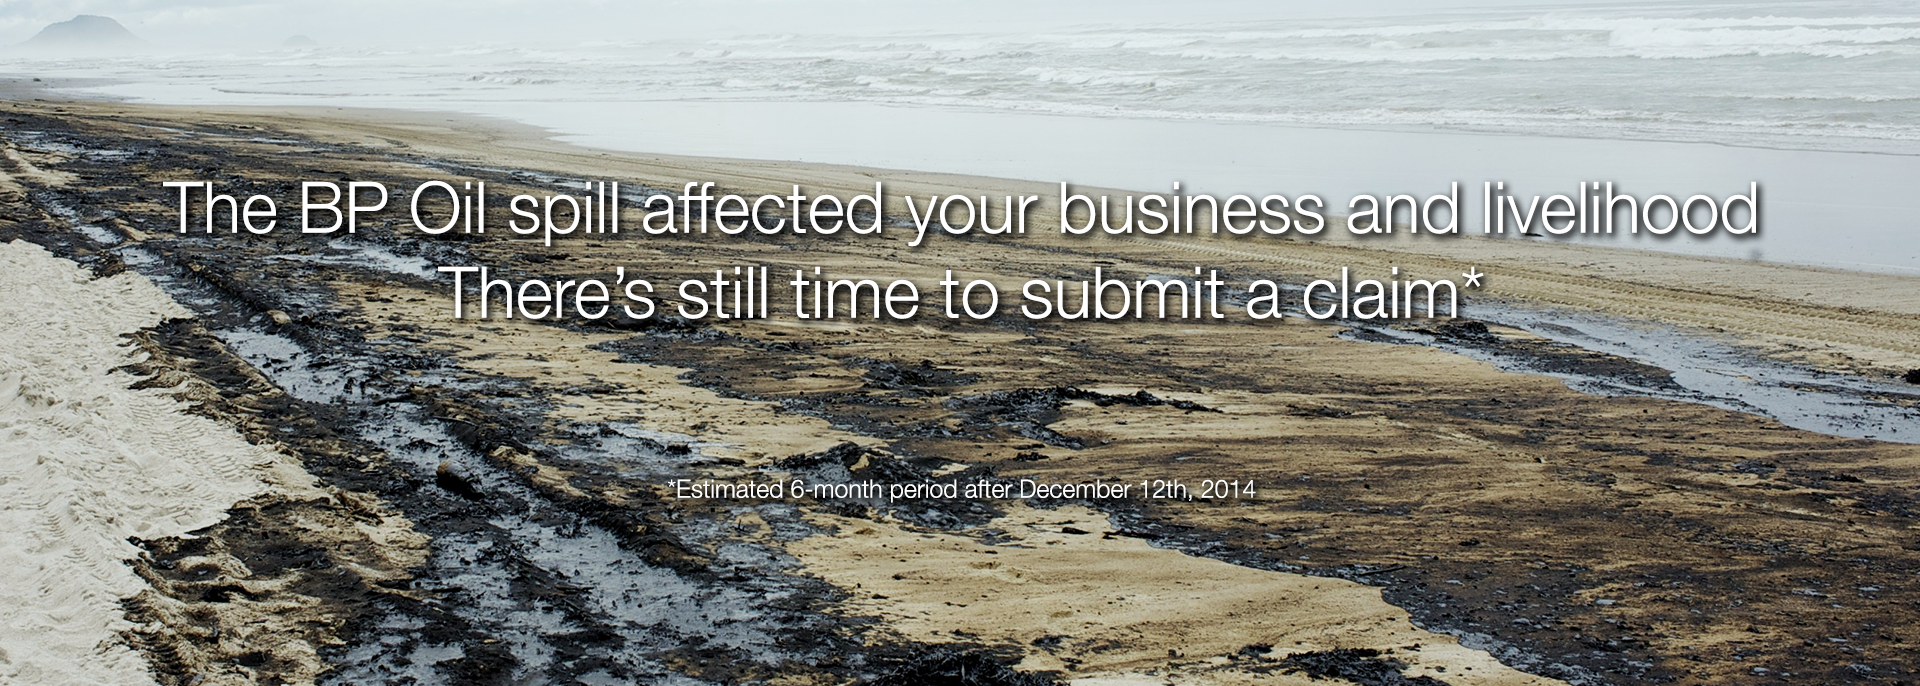 Did the BP oil spill affect your business and livelihood? Contact us today for more information on submitting a claim